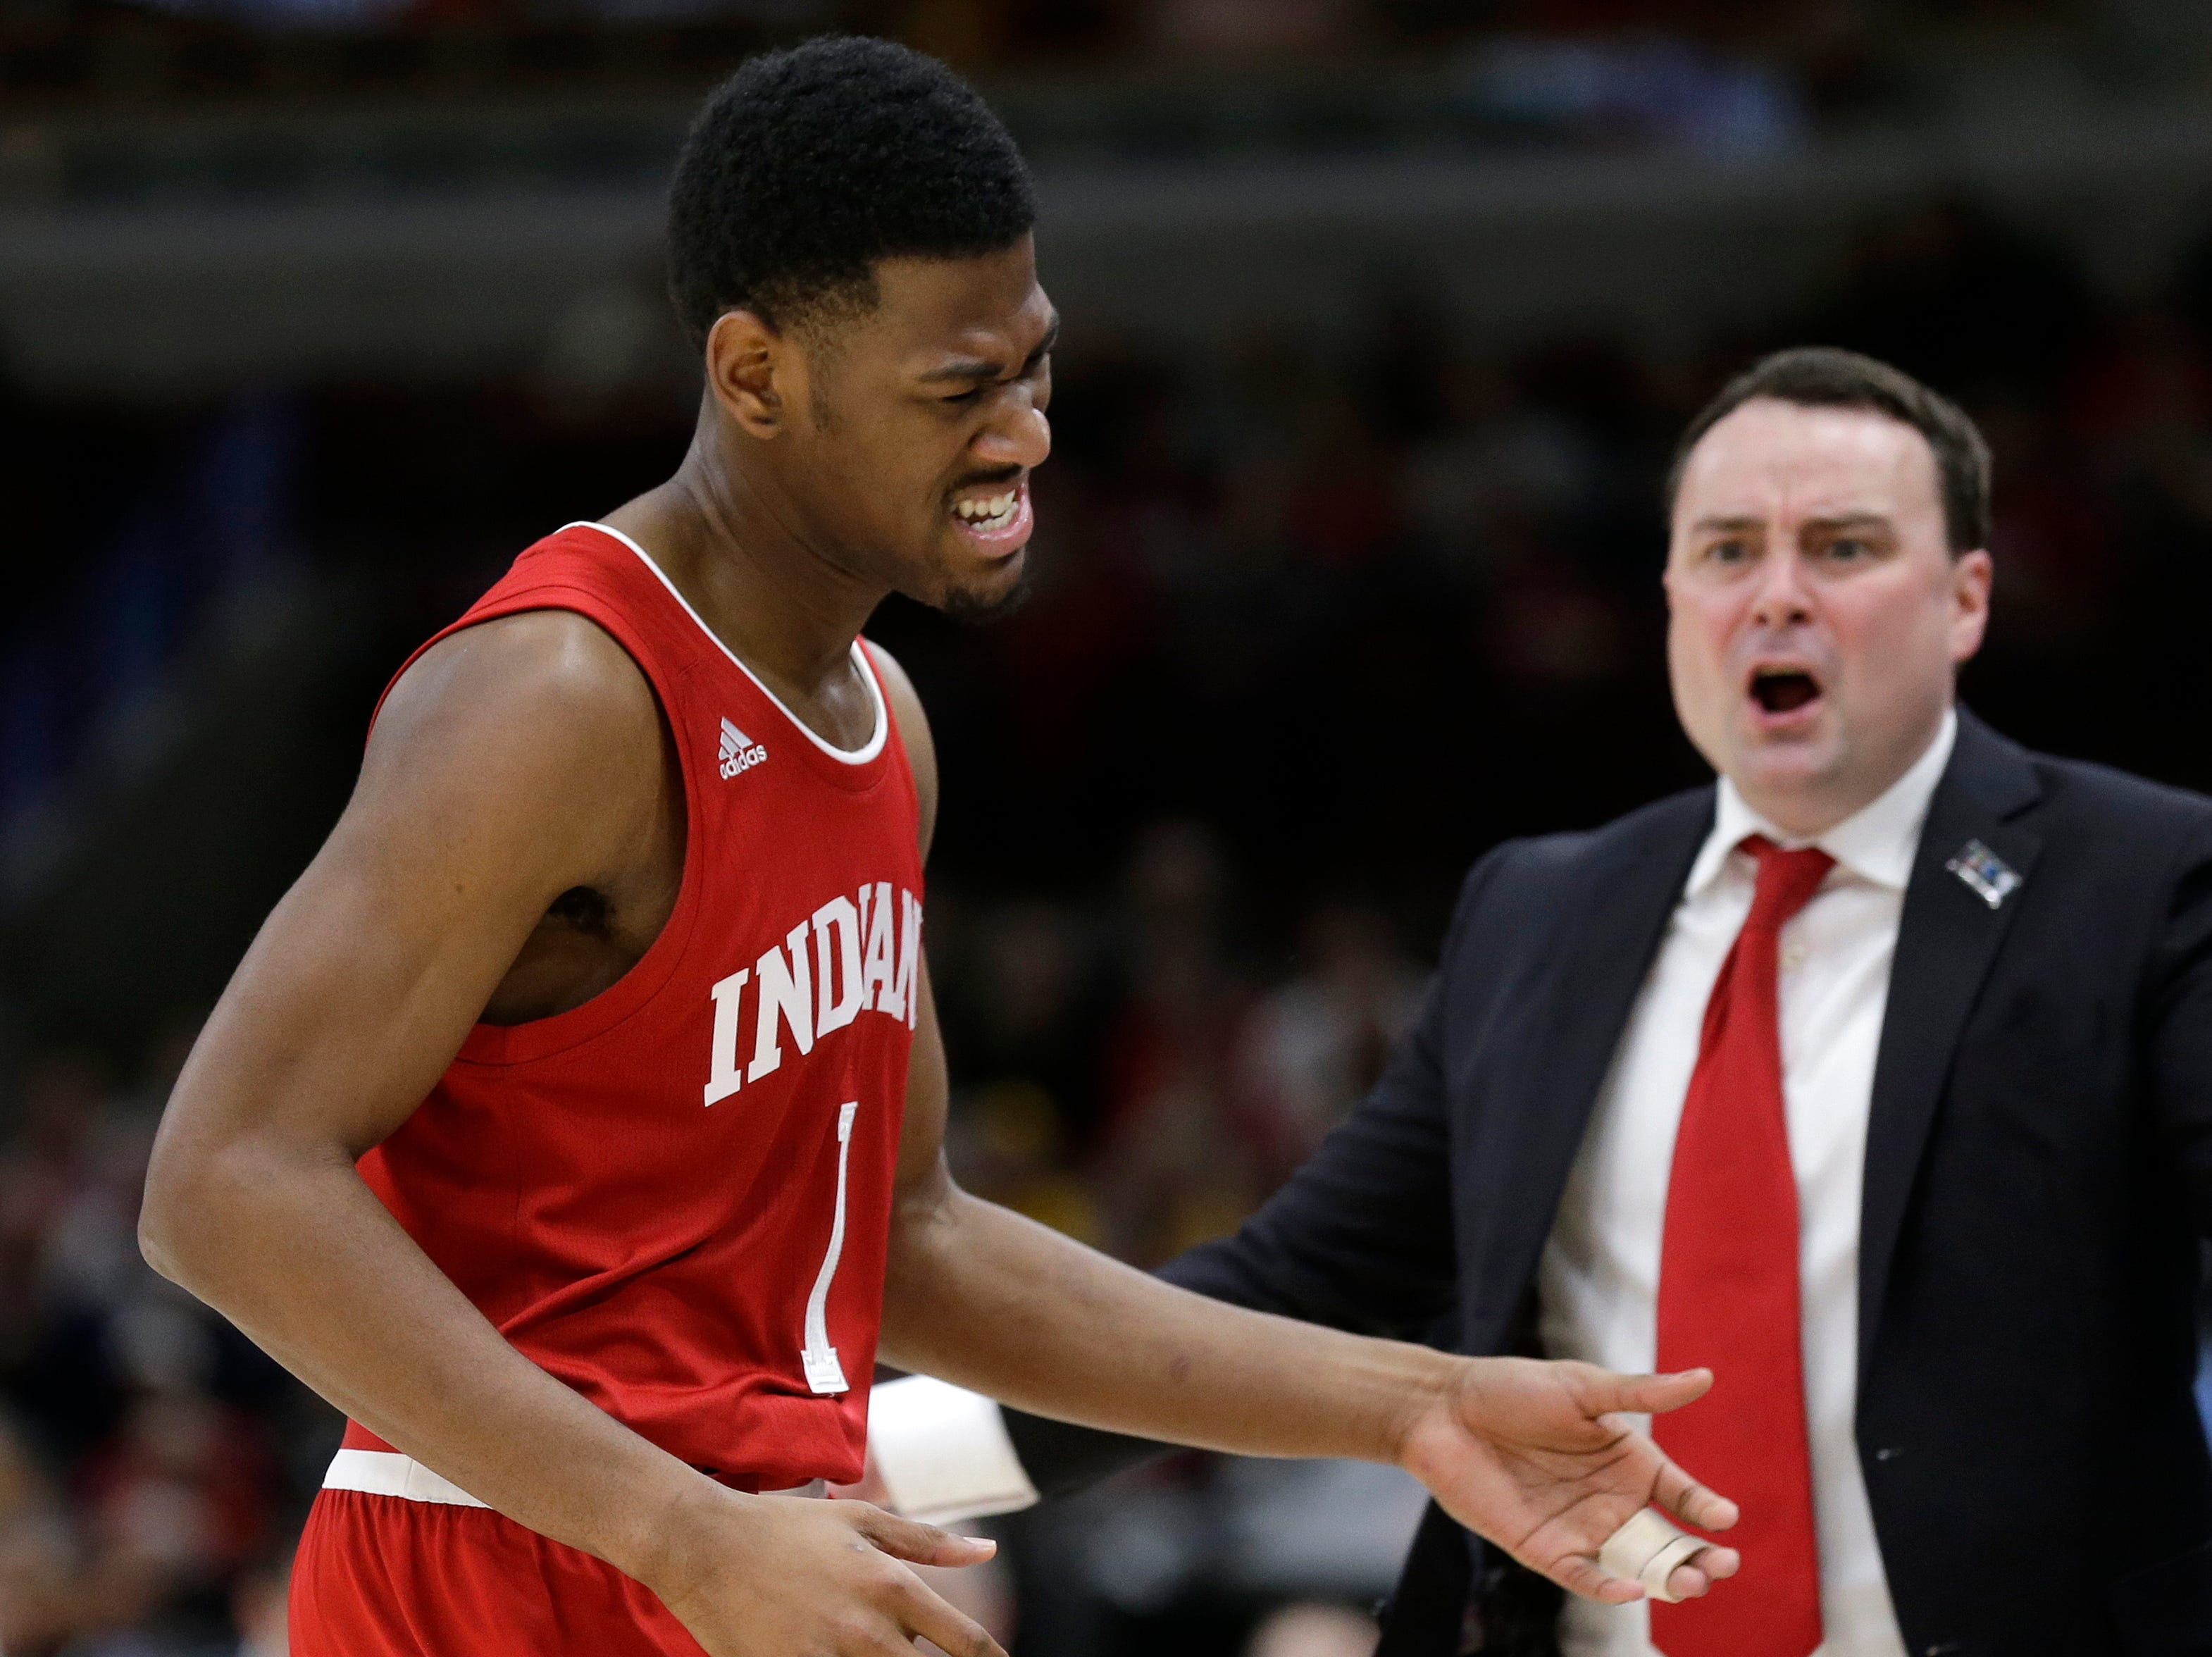 Indiana Hoosiers head coach Archie Miller reacts as Aljami Durham (1) walks off the court during the second half of an NCAA college basketball game against the Ohio State in the second round of the Big Ten Conference tournament, Thursday, March 14, 2019, in Chicago. (AP Photo/Kiichiro Sato)